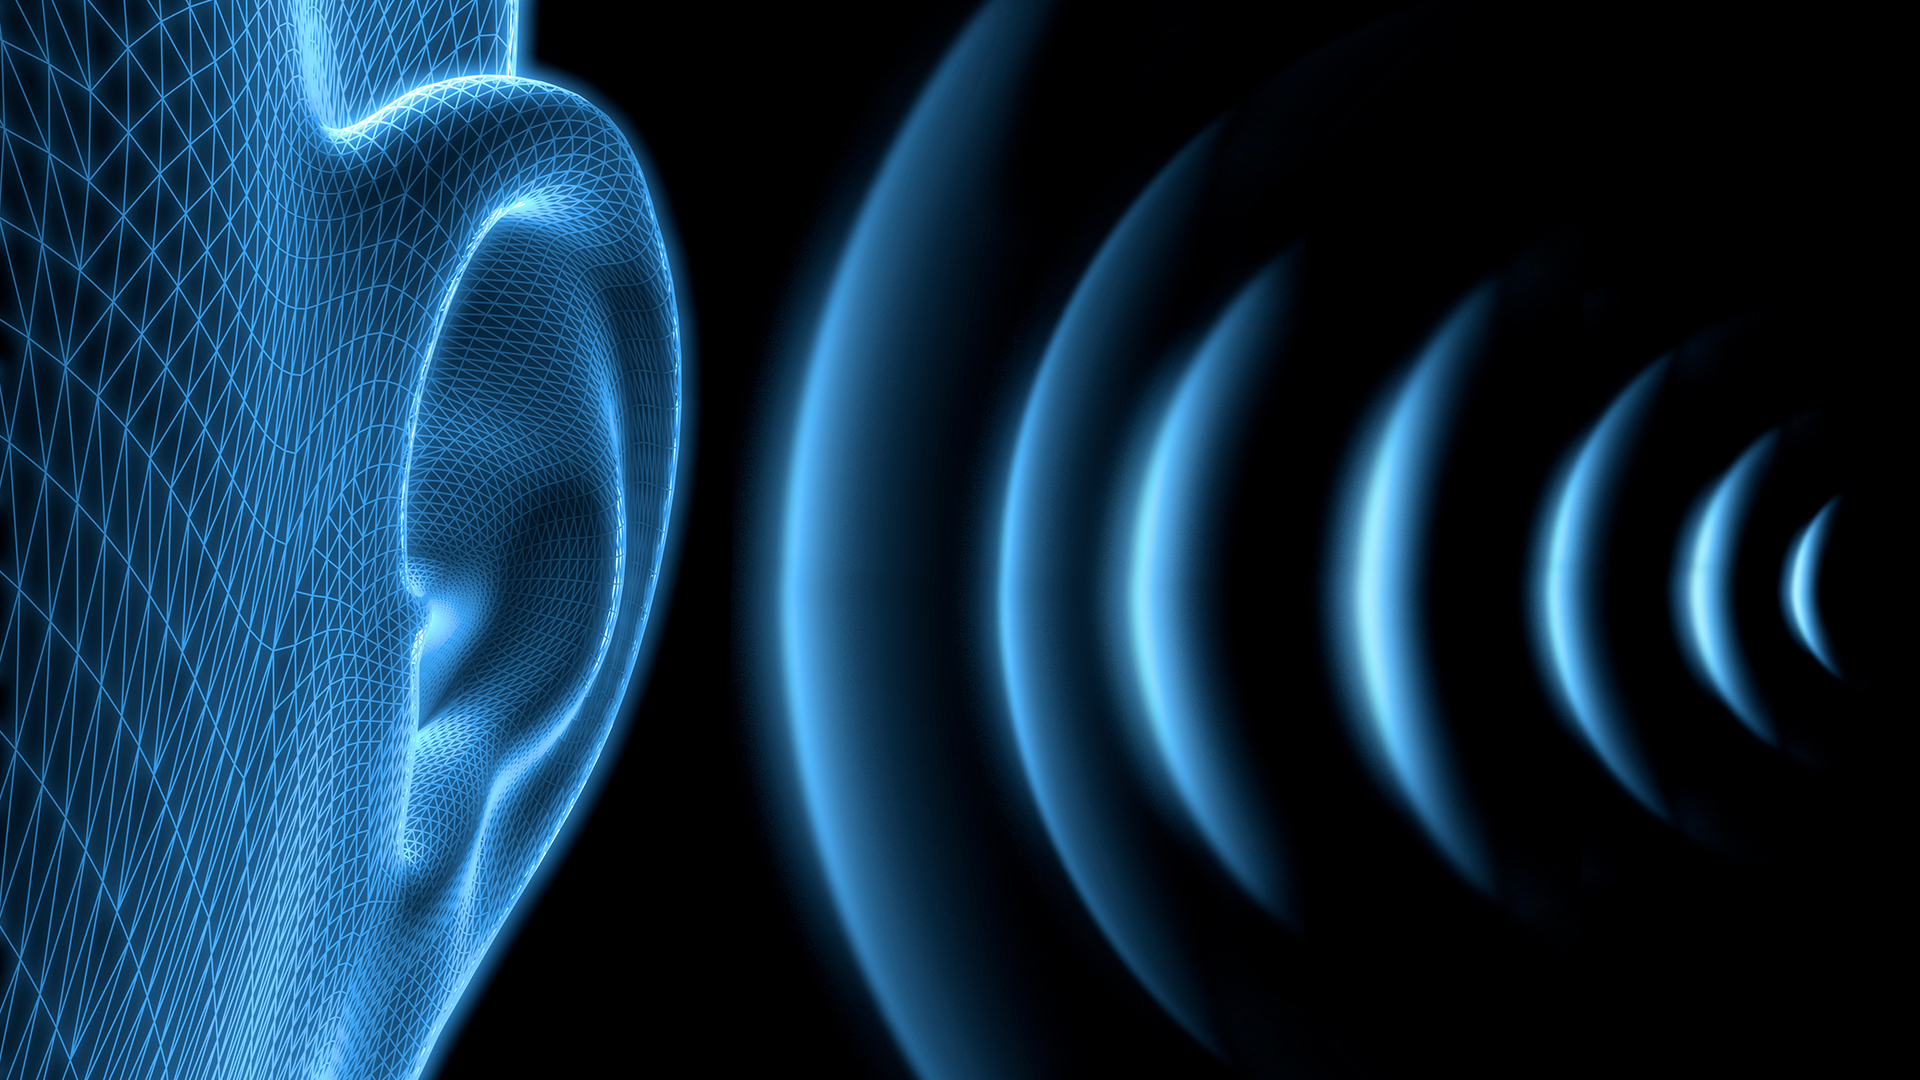 Whether you manage a concert venue, construction site or even a corporate office, it's important that your employees know that hearing loss is preventable and that they understand the warning signs. Read more to learn about Atrium Health's audiometry testing.